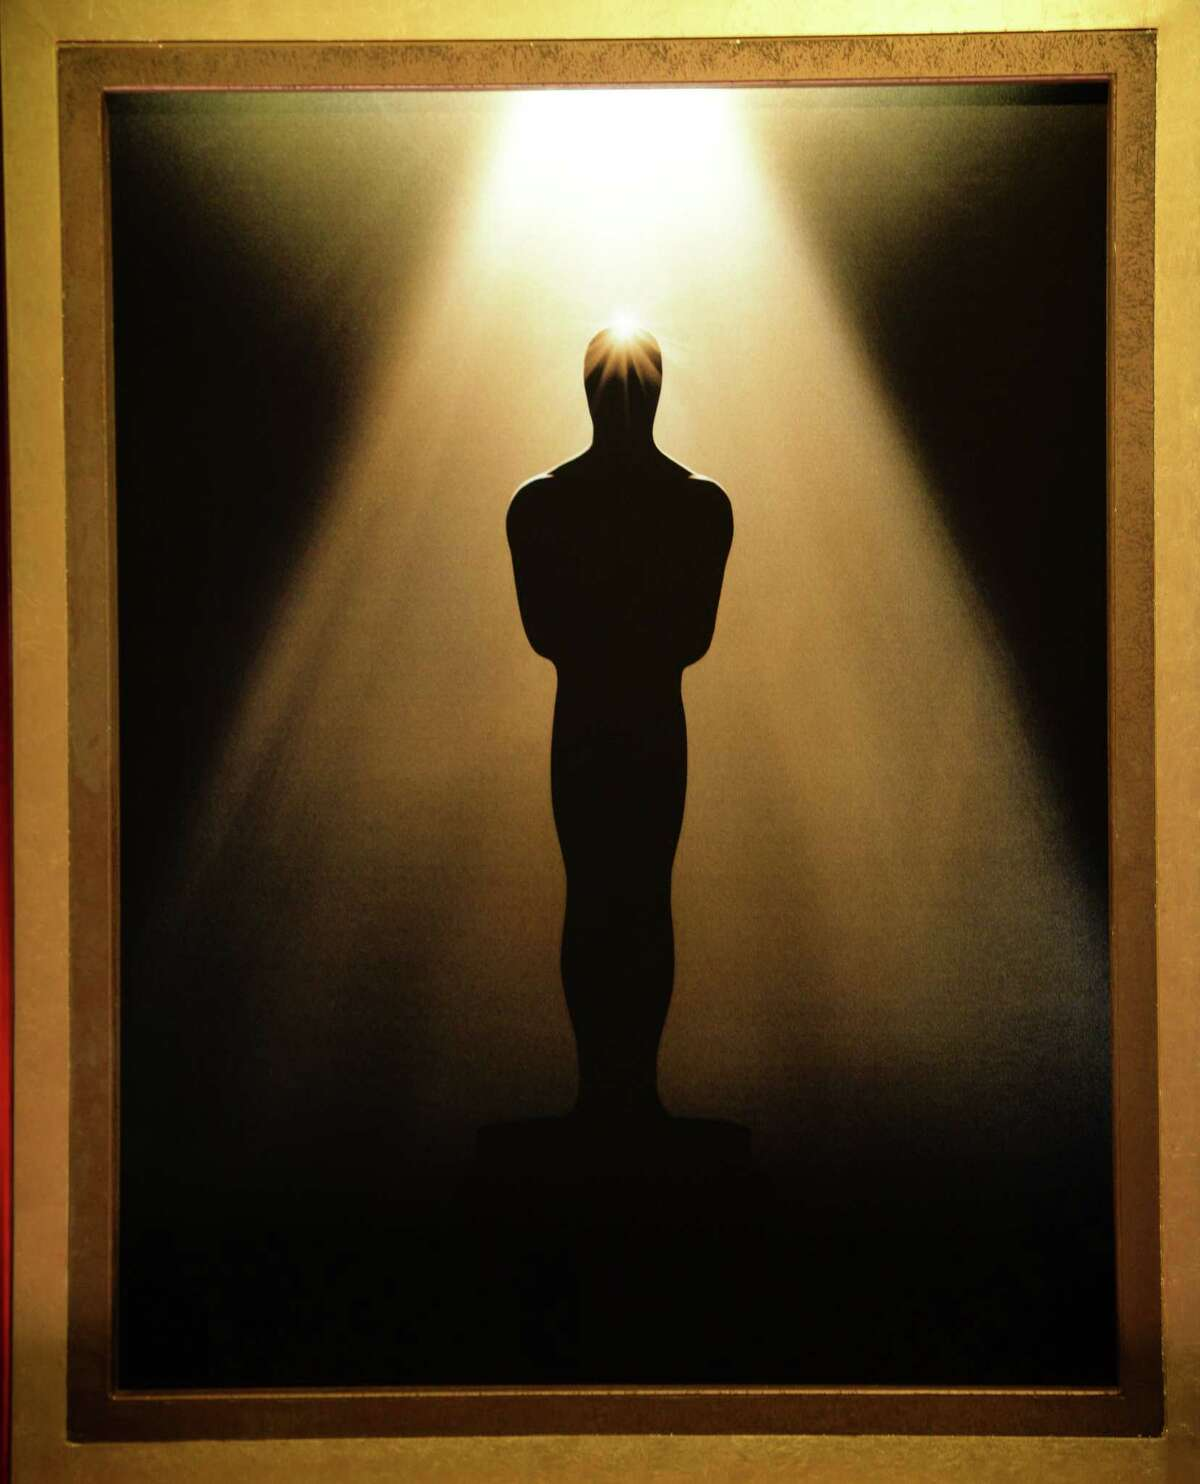 An image of an Oscar Statue is seen at the 86th Academy Awards nominations announcement, at the Academy of Motion Picture Arts and Sciences, January 16, 2014 in Beverly Hills, California. The Oscars will take place March 2, 2014 at the Dolby Theatre in Hollywood, California. AFP PHOTO / Robyn BECKROBYN BECK/AFP/Getty Images